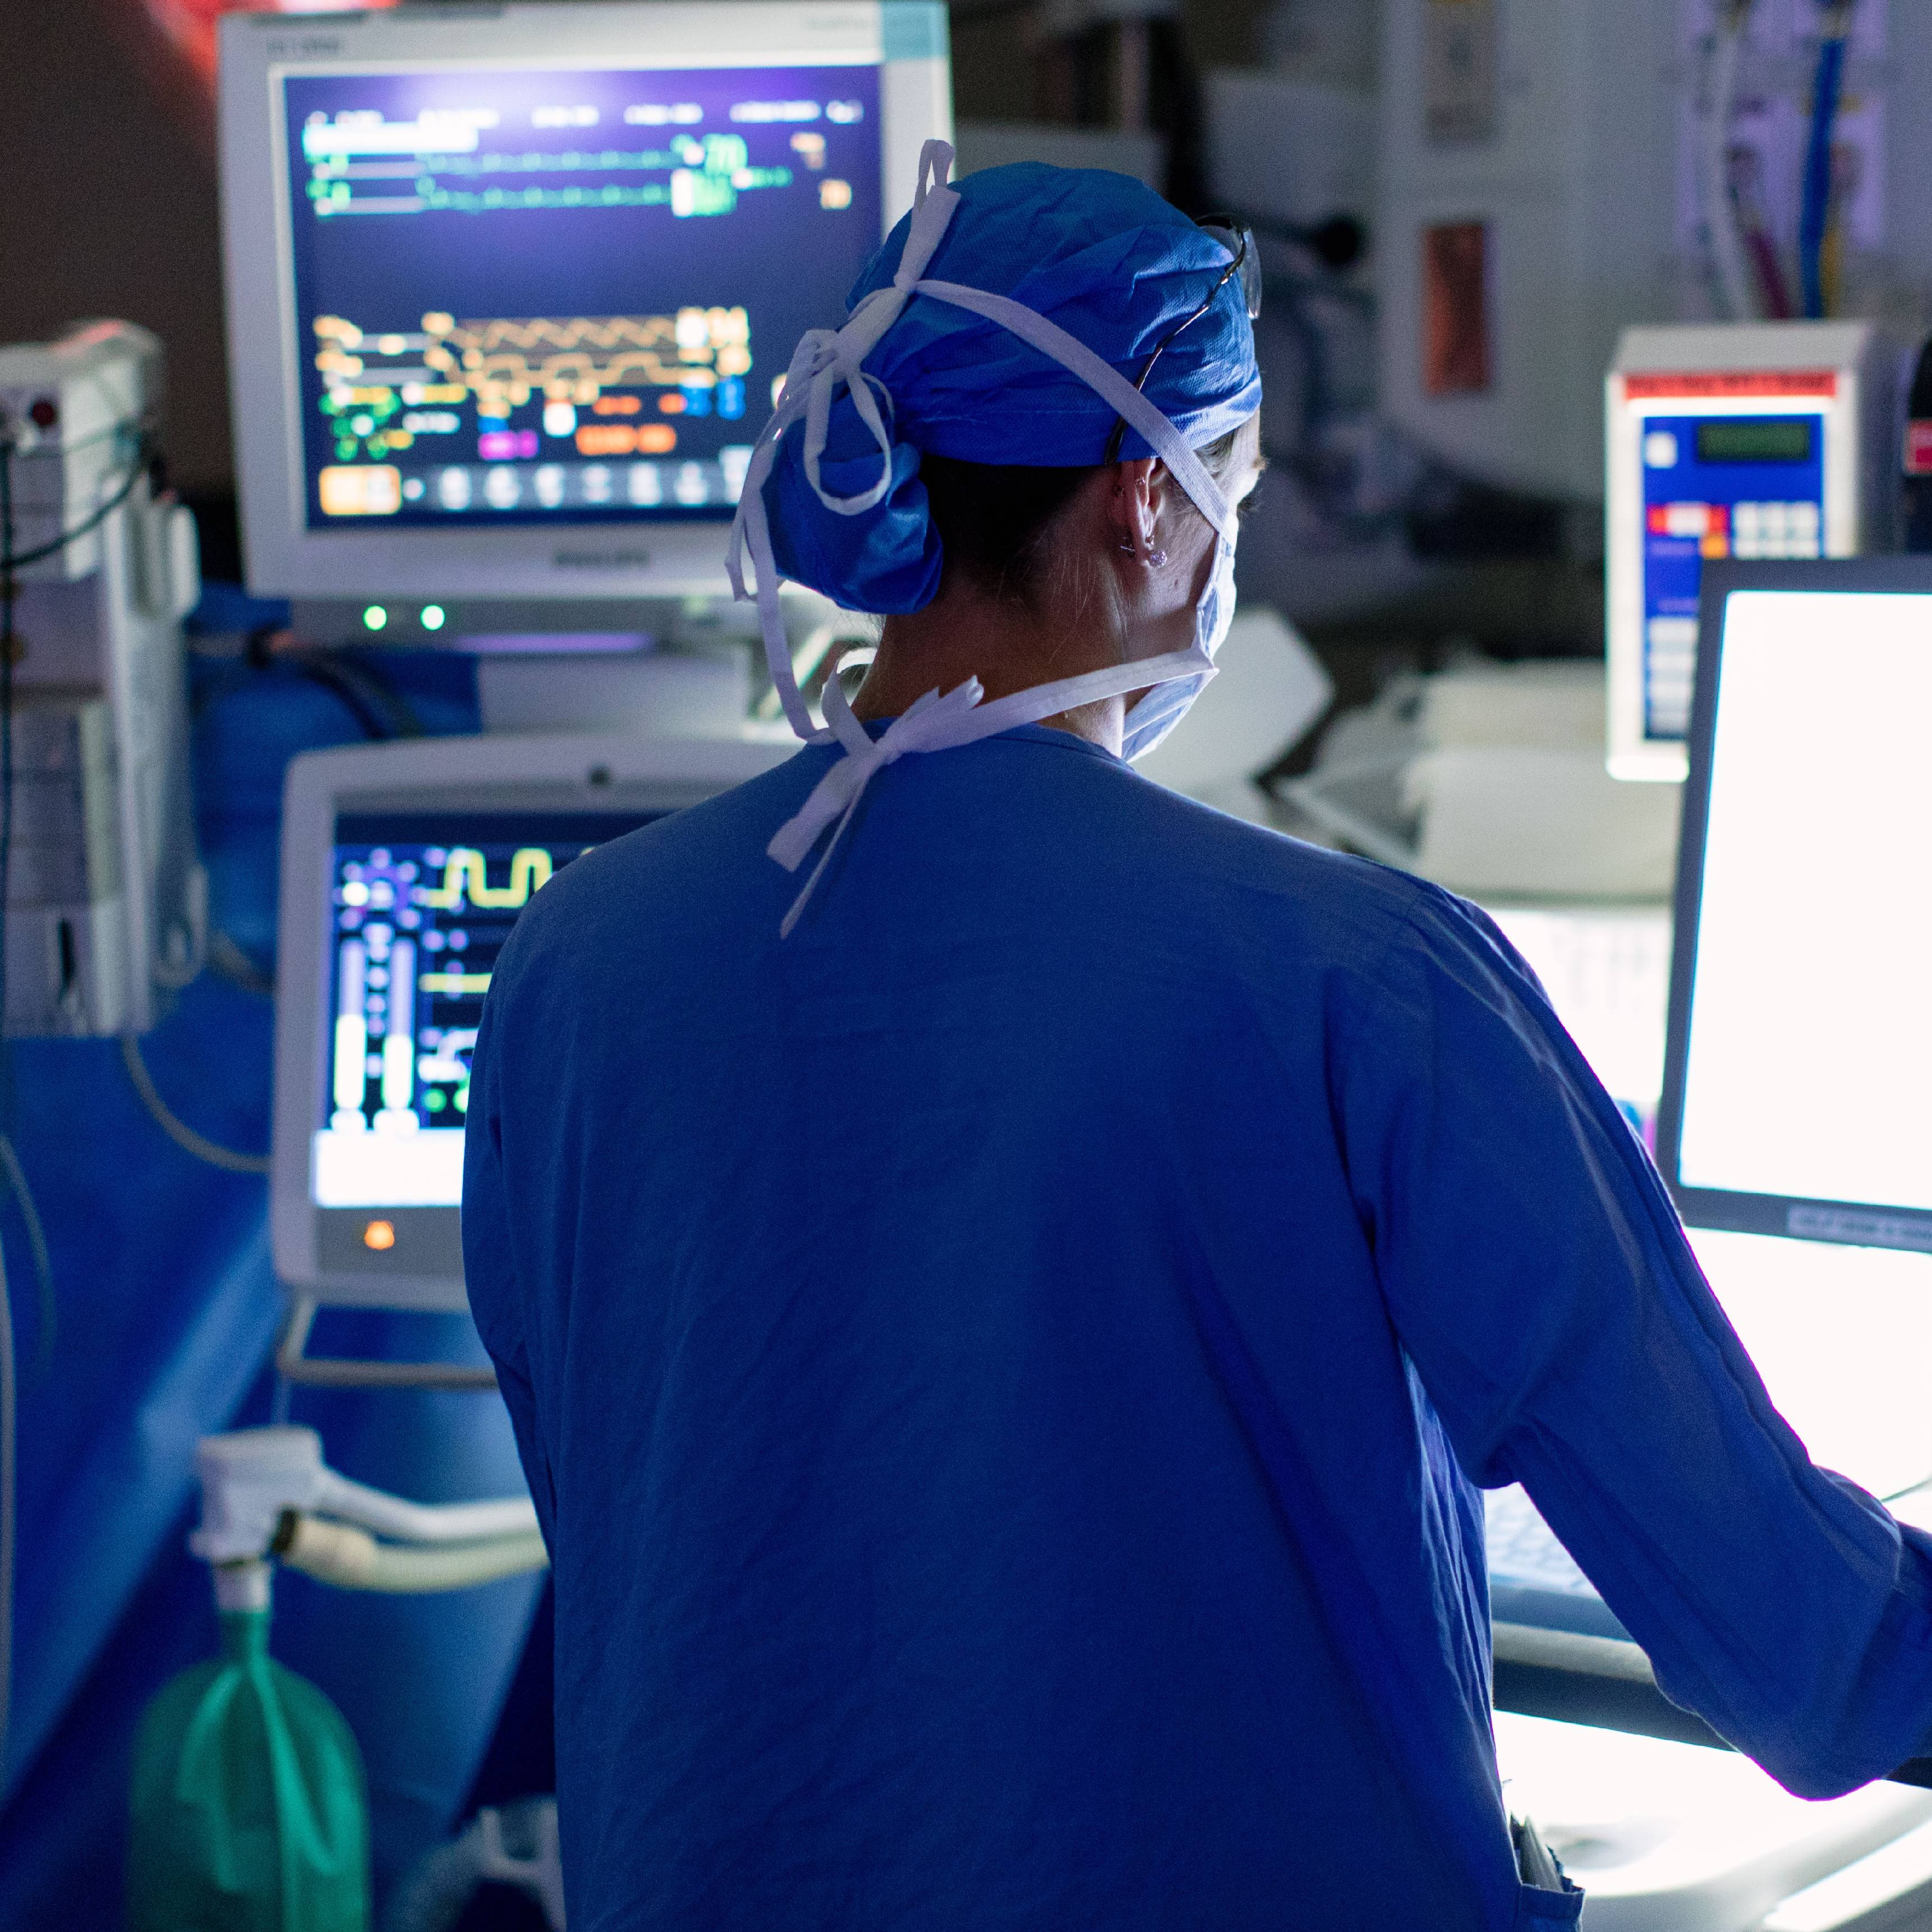 prostate cancer surgery in the operating room